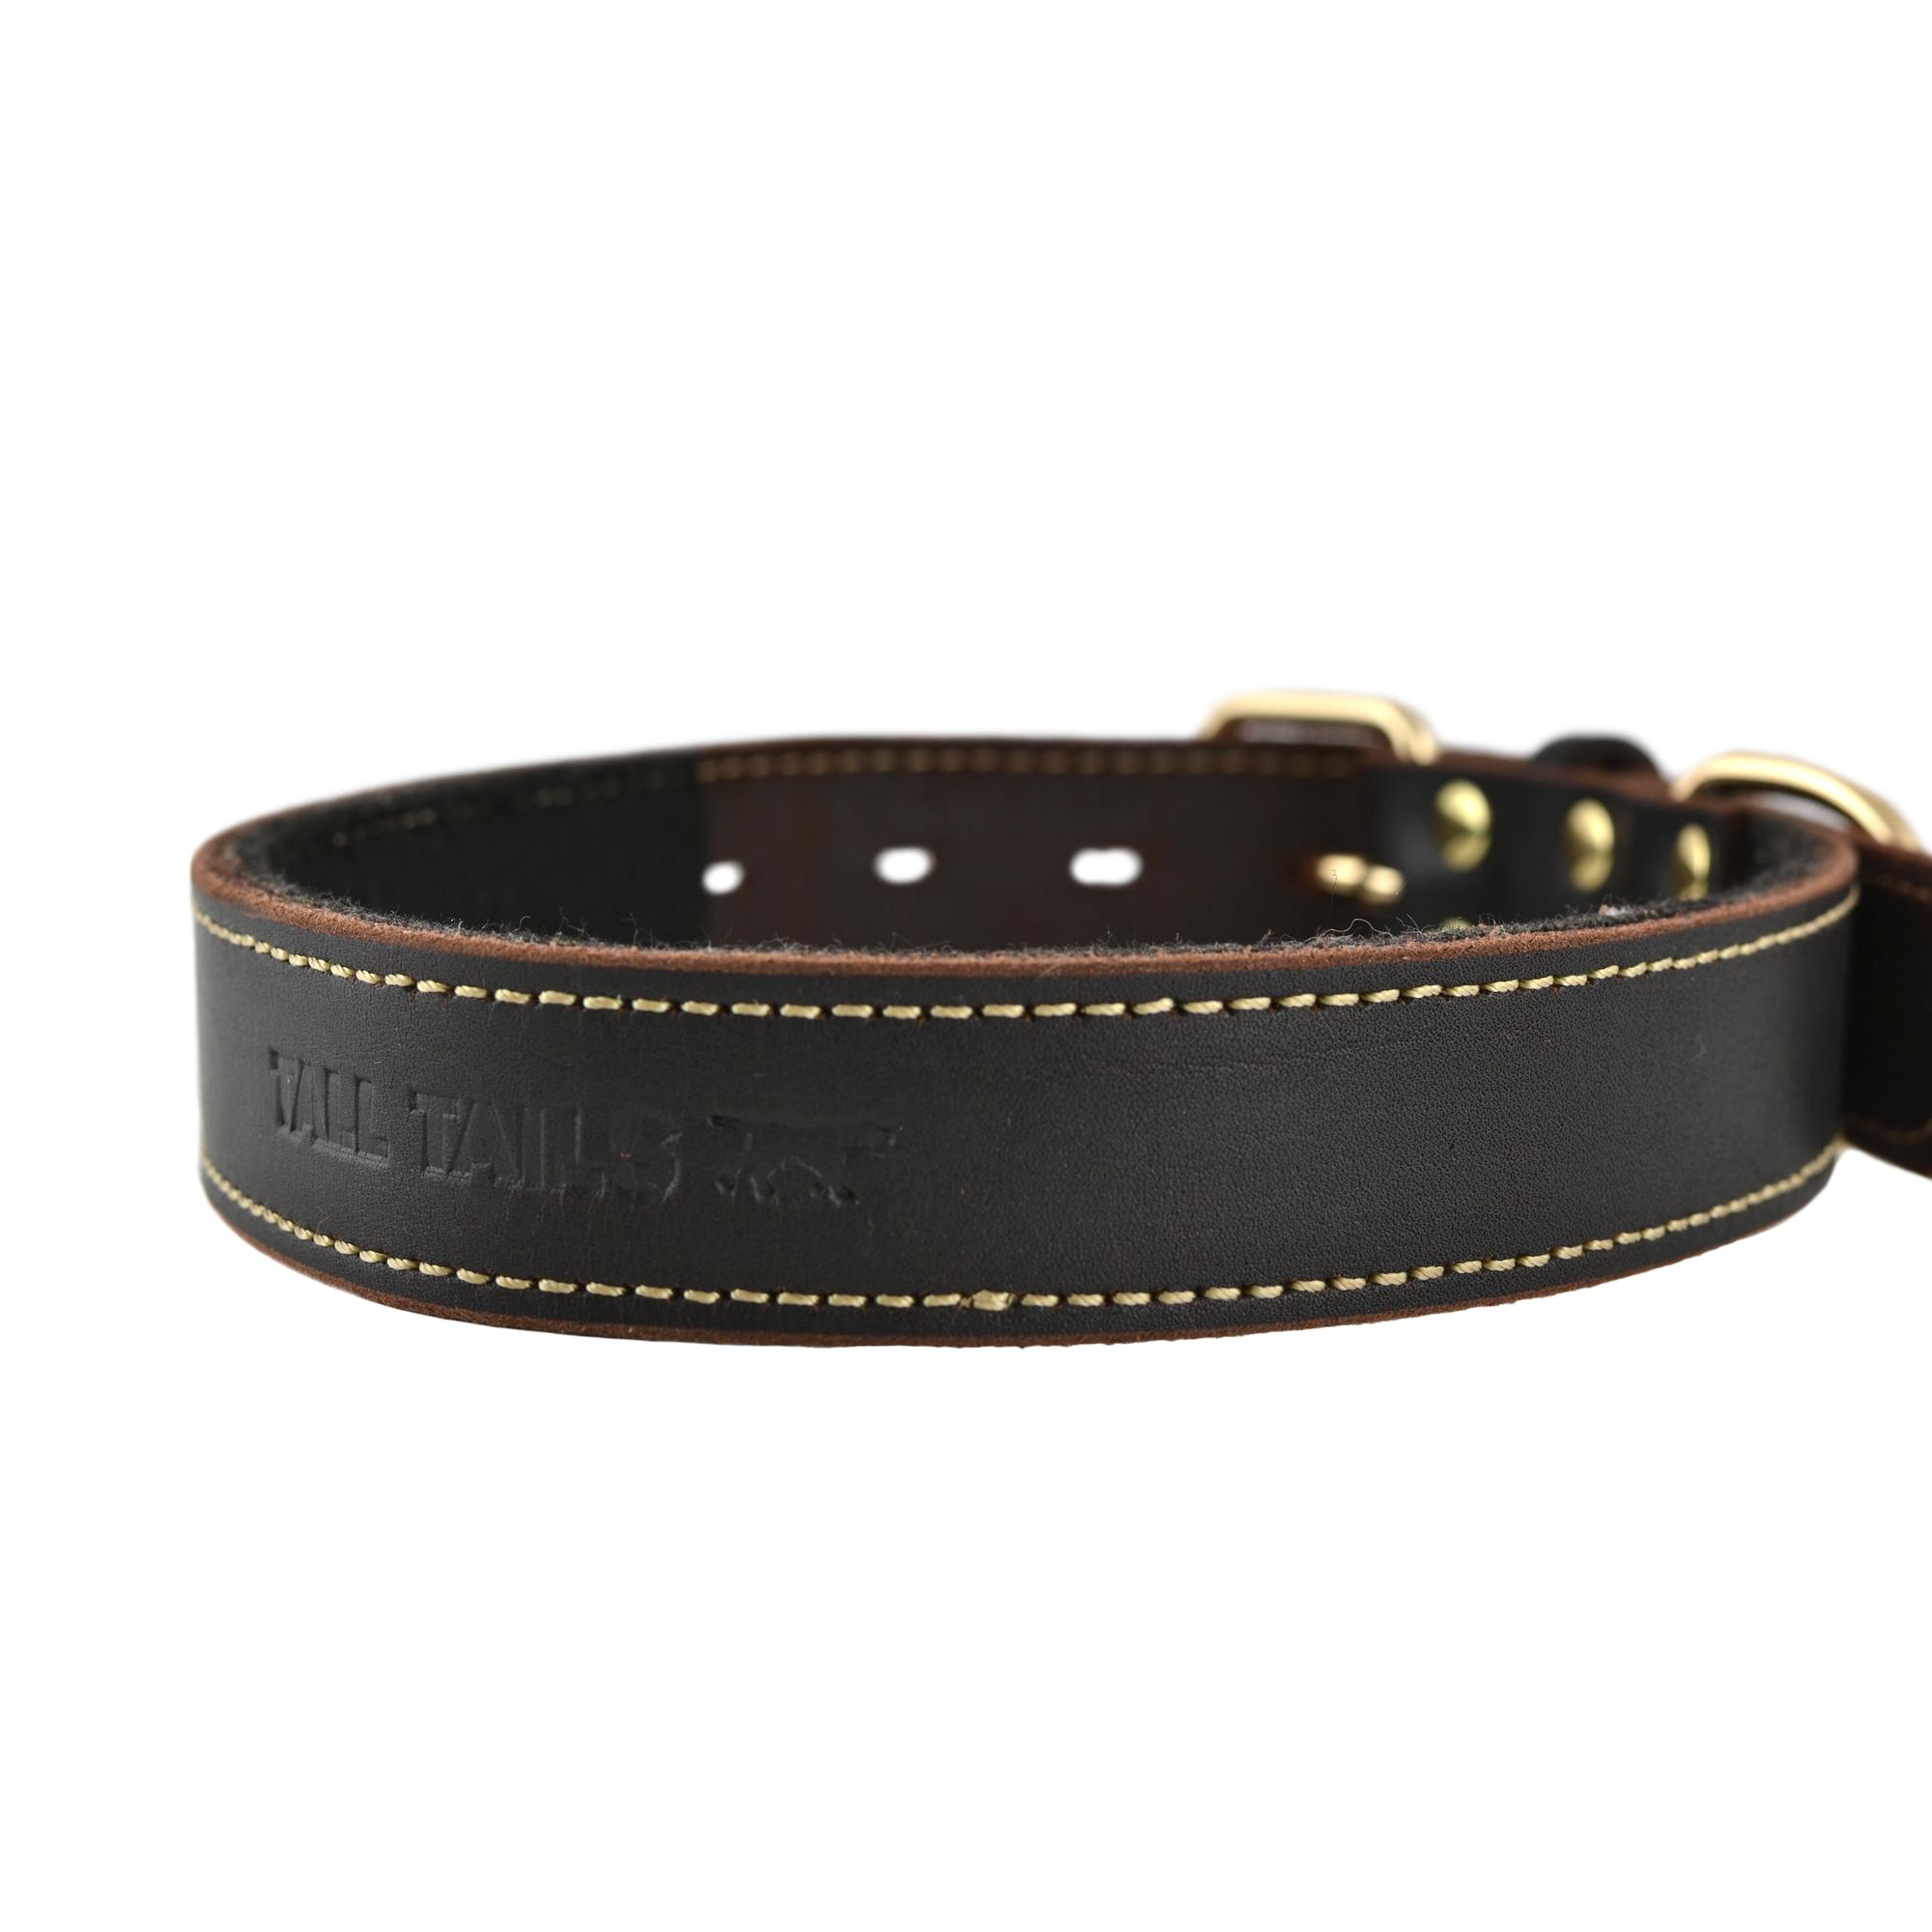 Tall Tails Genuine Leather Dog Collar, Large